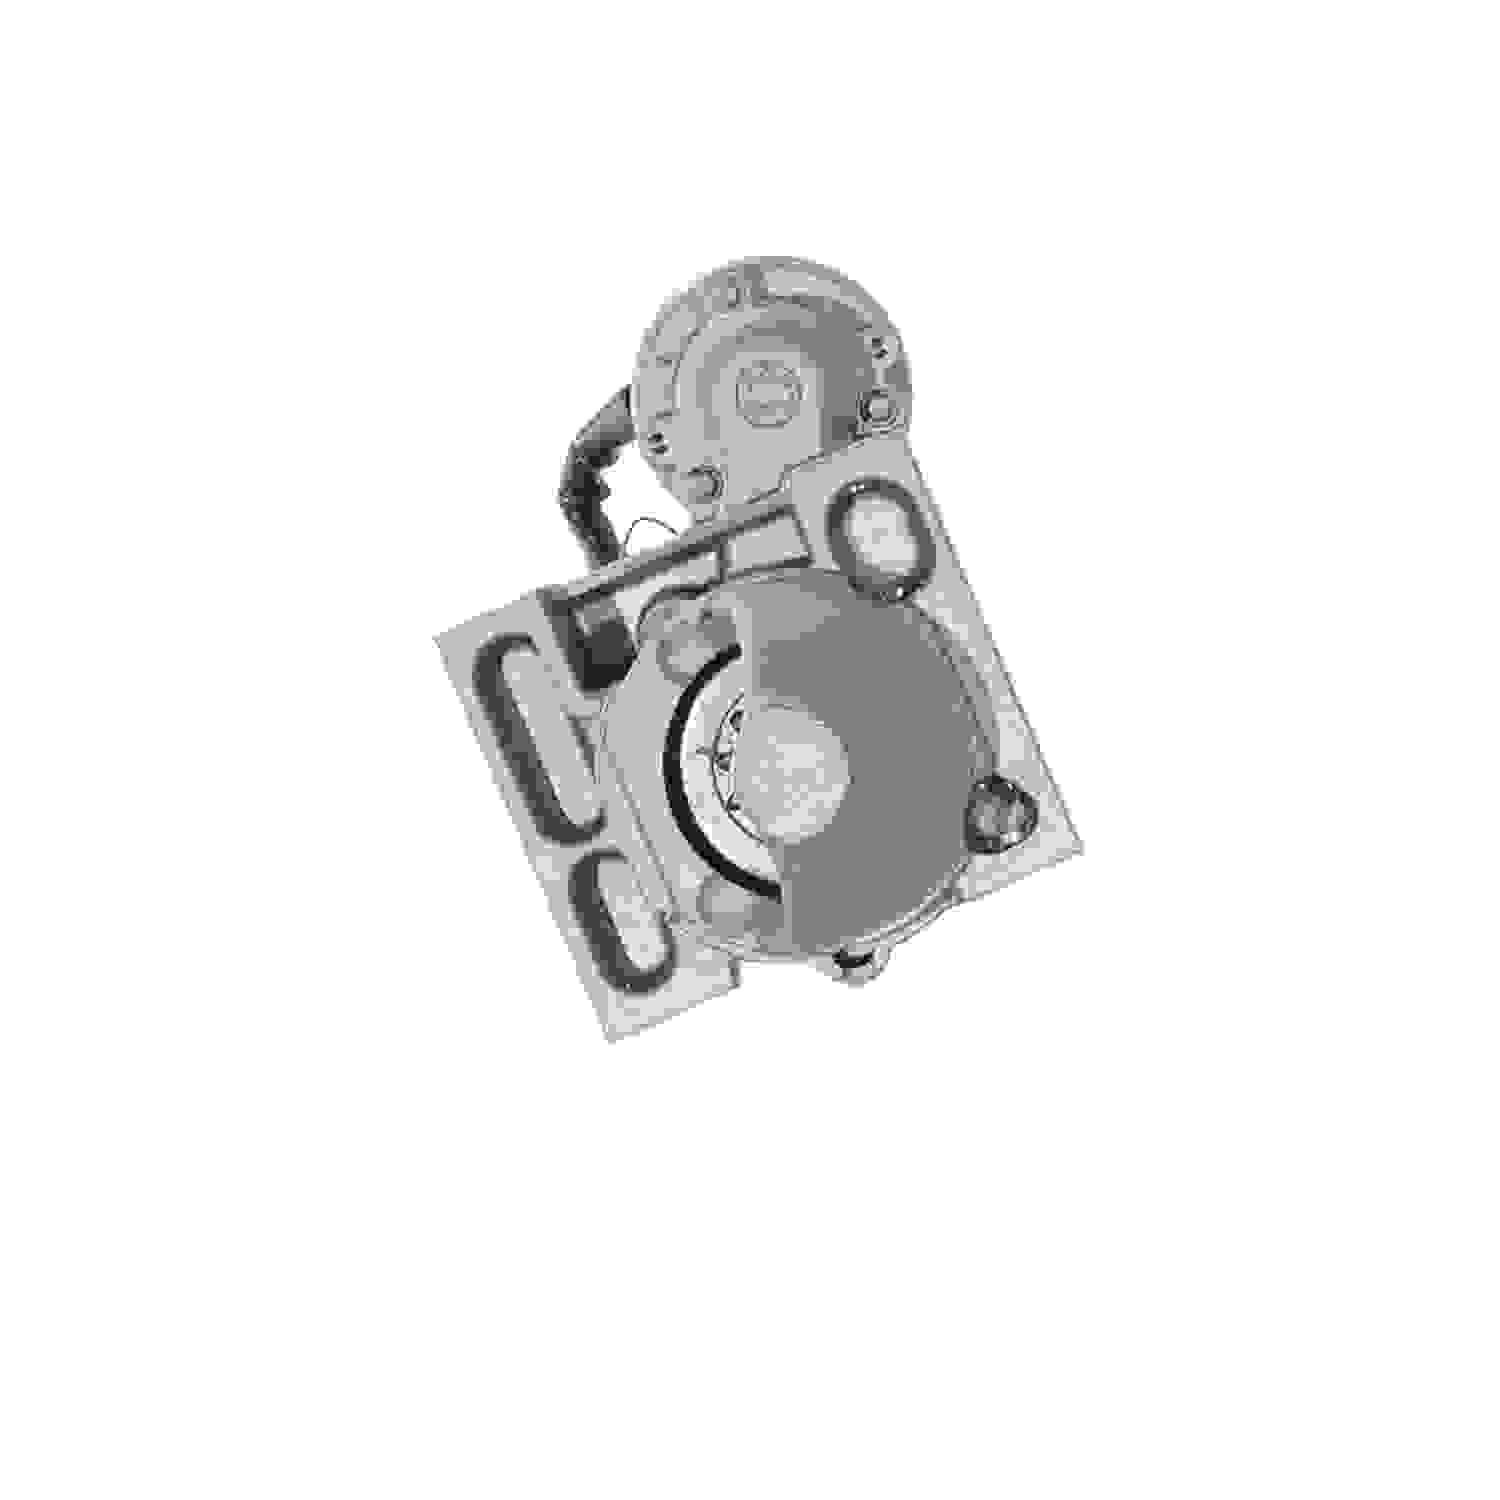 ACDELCO GOLD/PROFESSIONAL - Starter Motor - DCC 337-1117